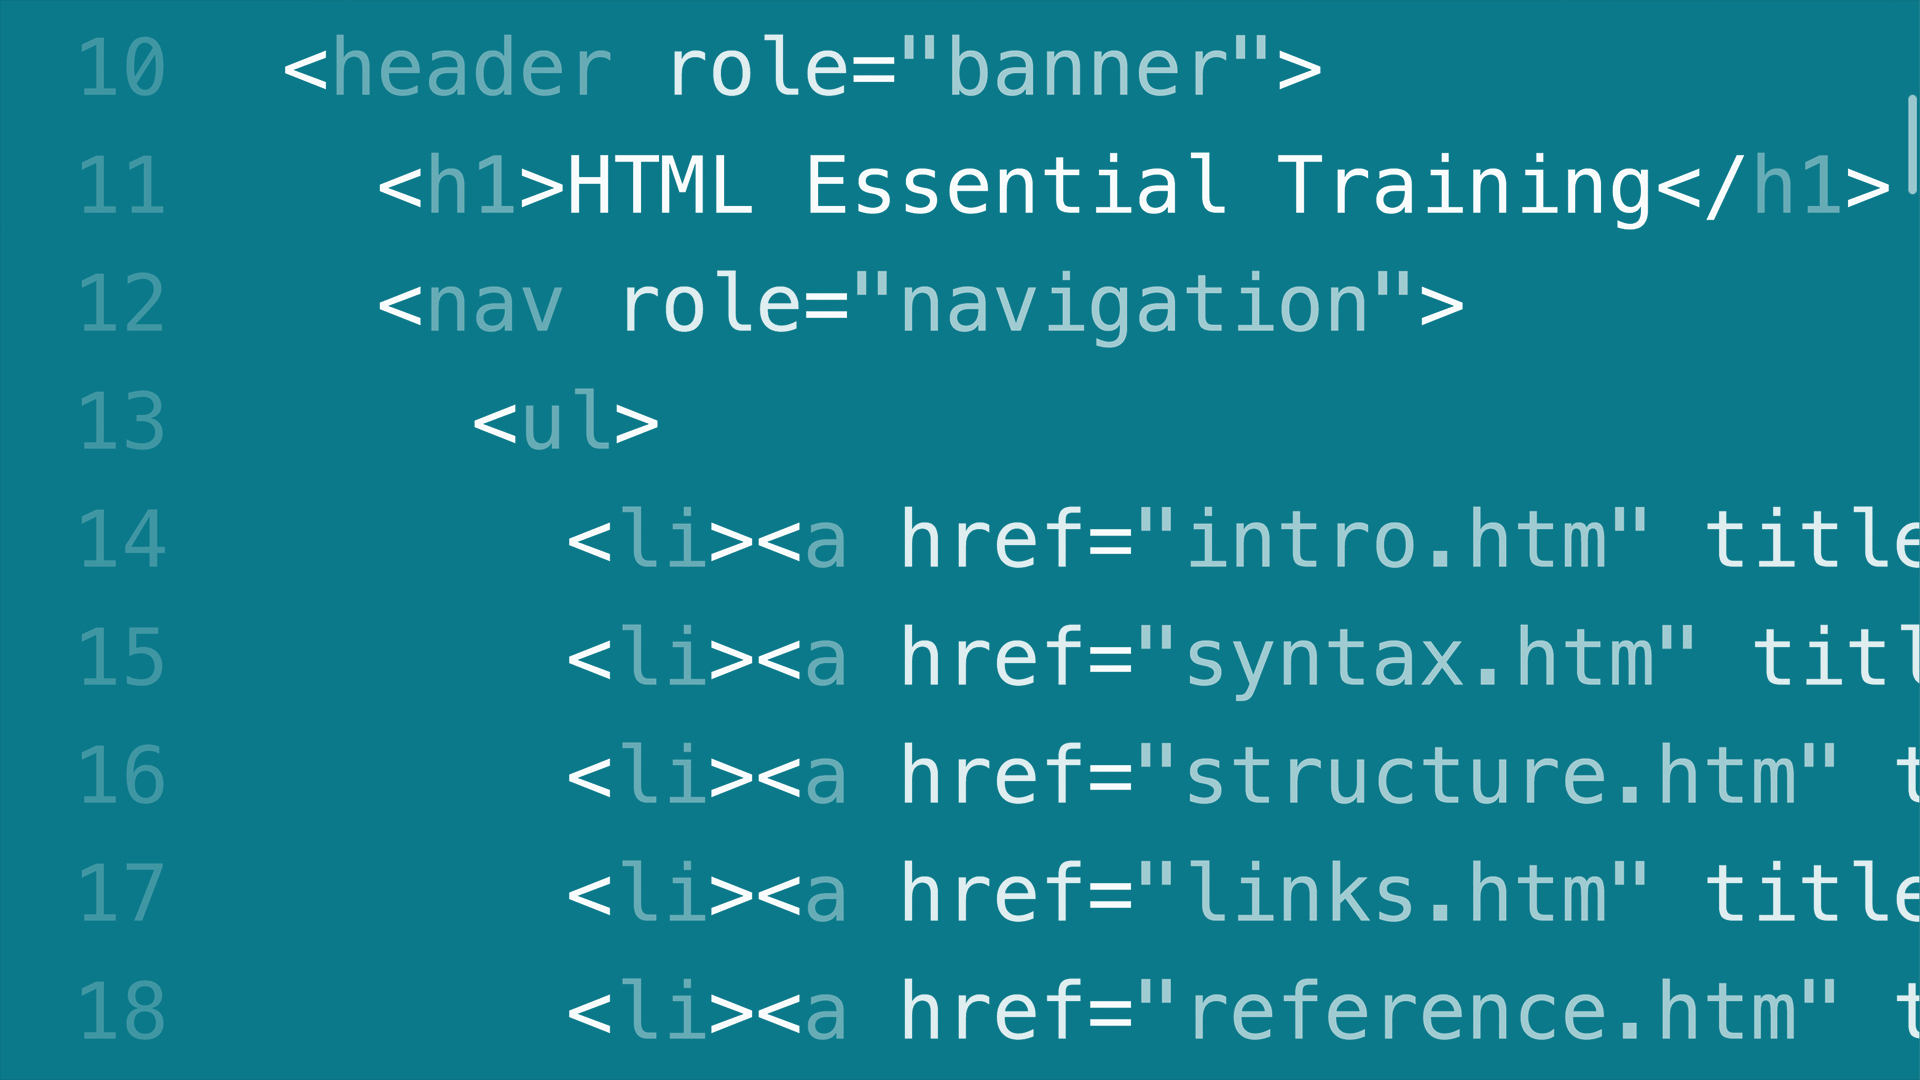 HTML Essential Training